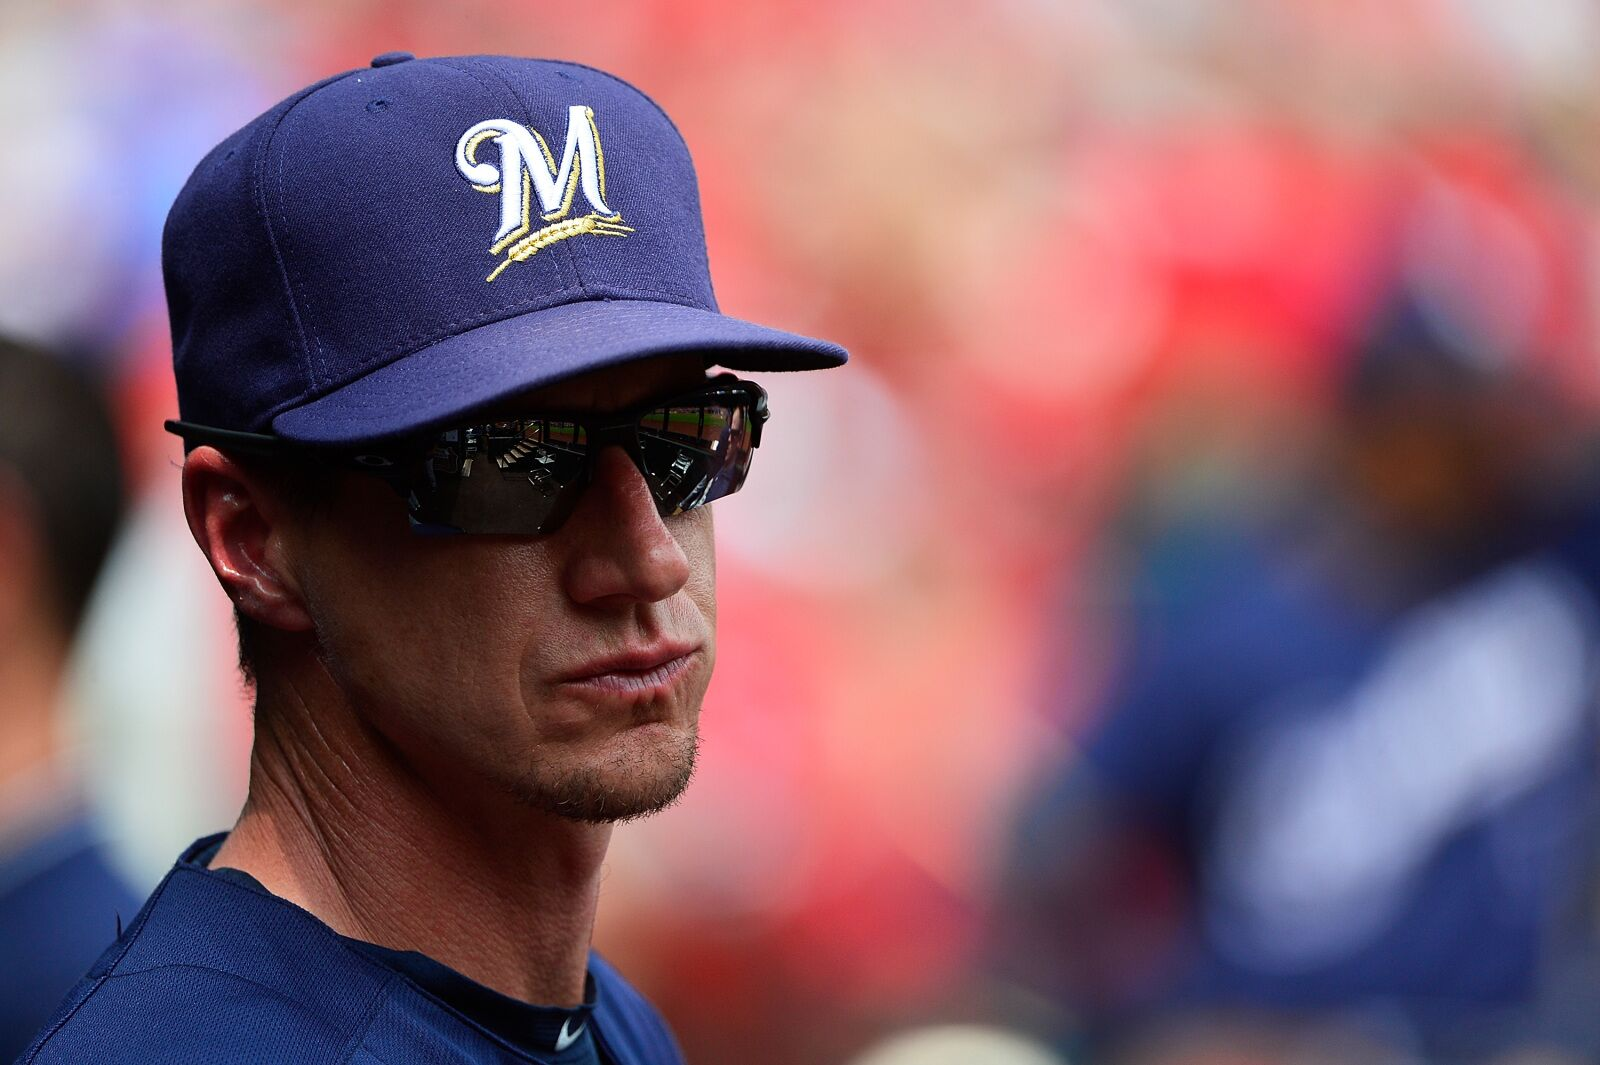 Milwaukee Brewers Have a Number of Significant Roles to Fill